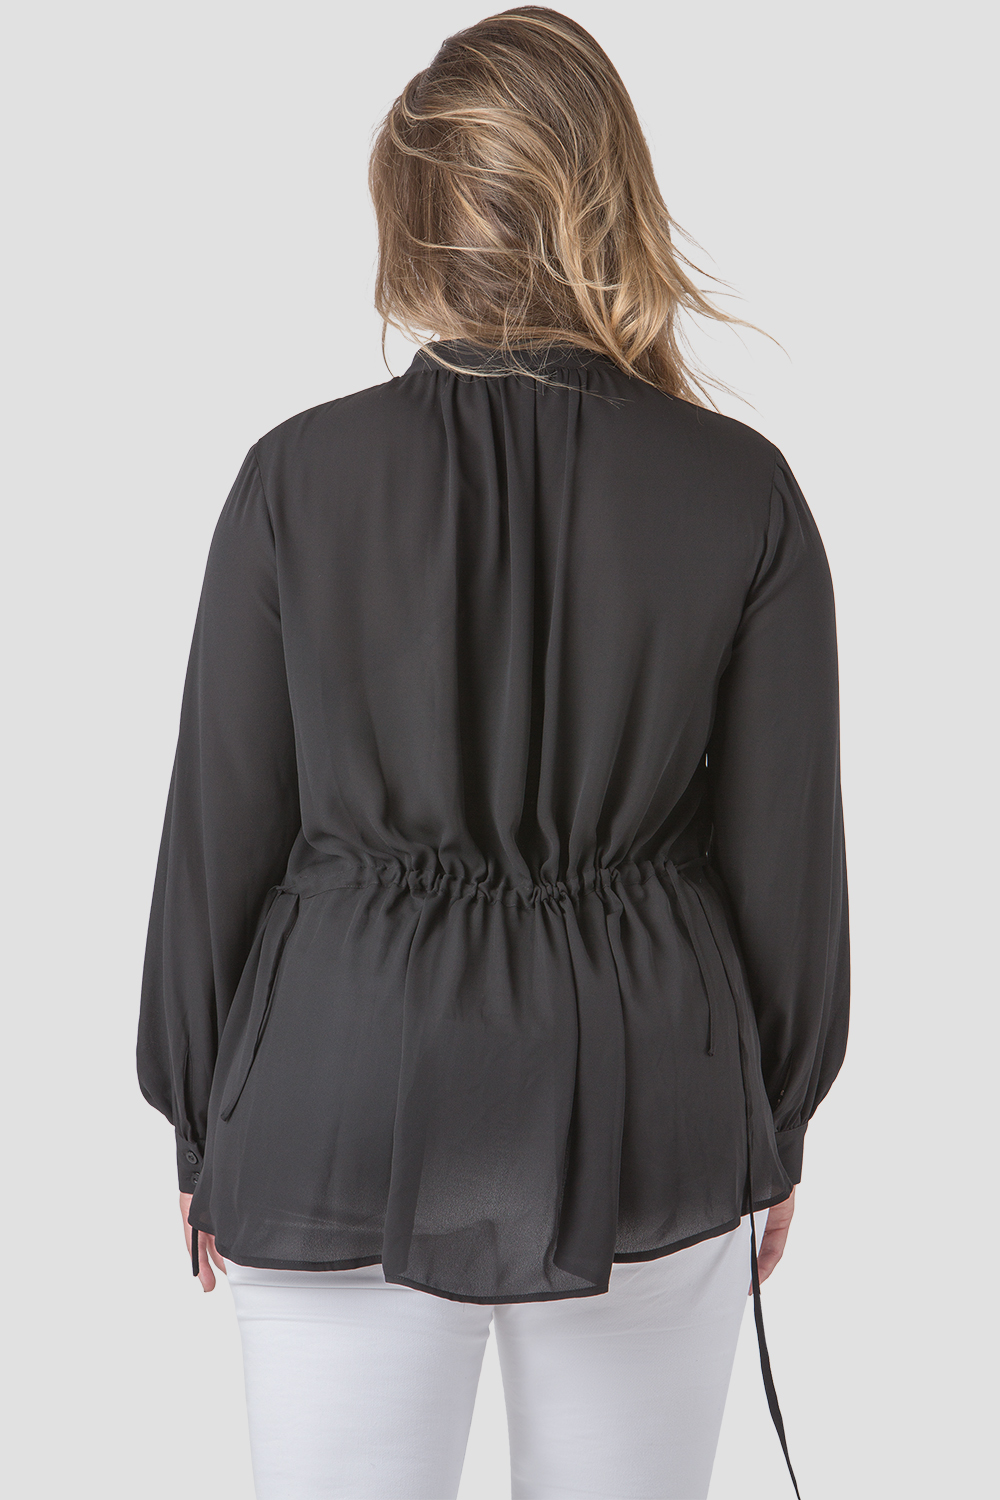 Plus Size Women Black Chiffon Drawstring Blouse